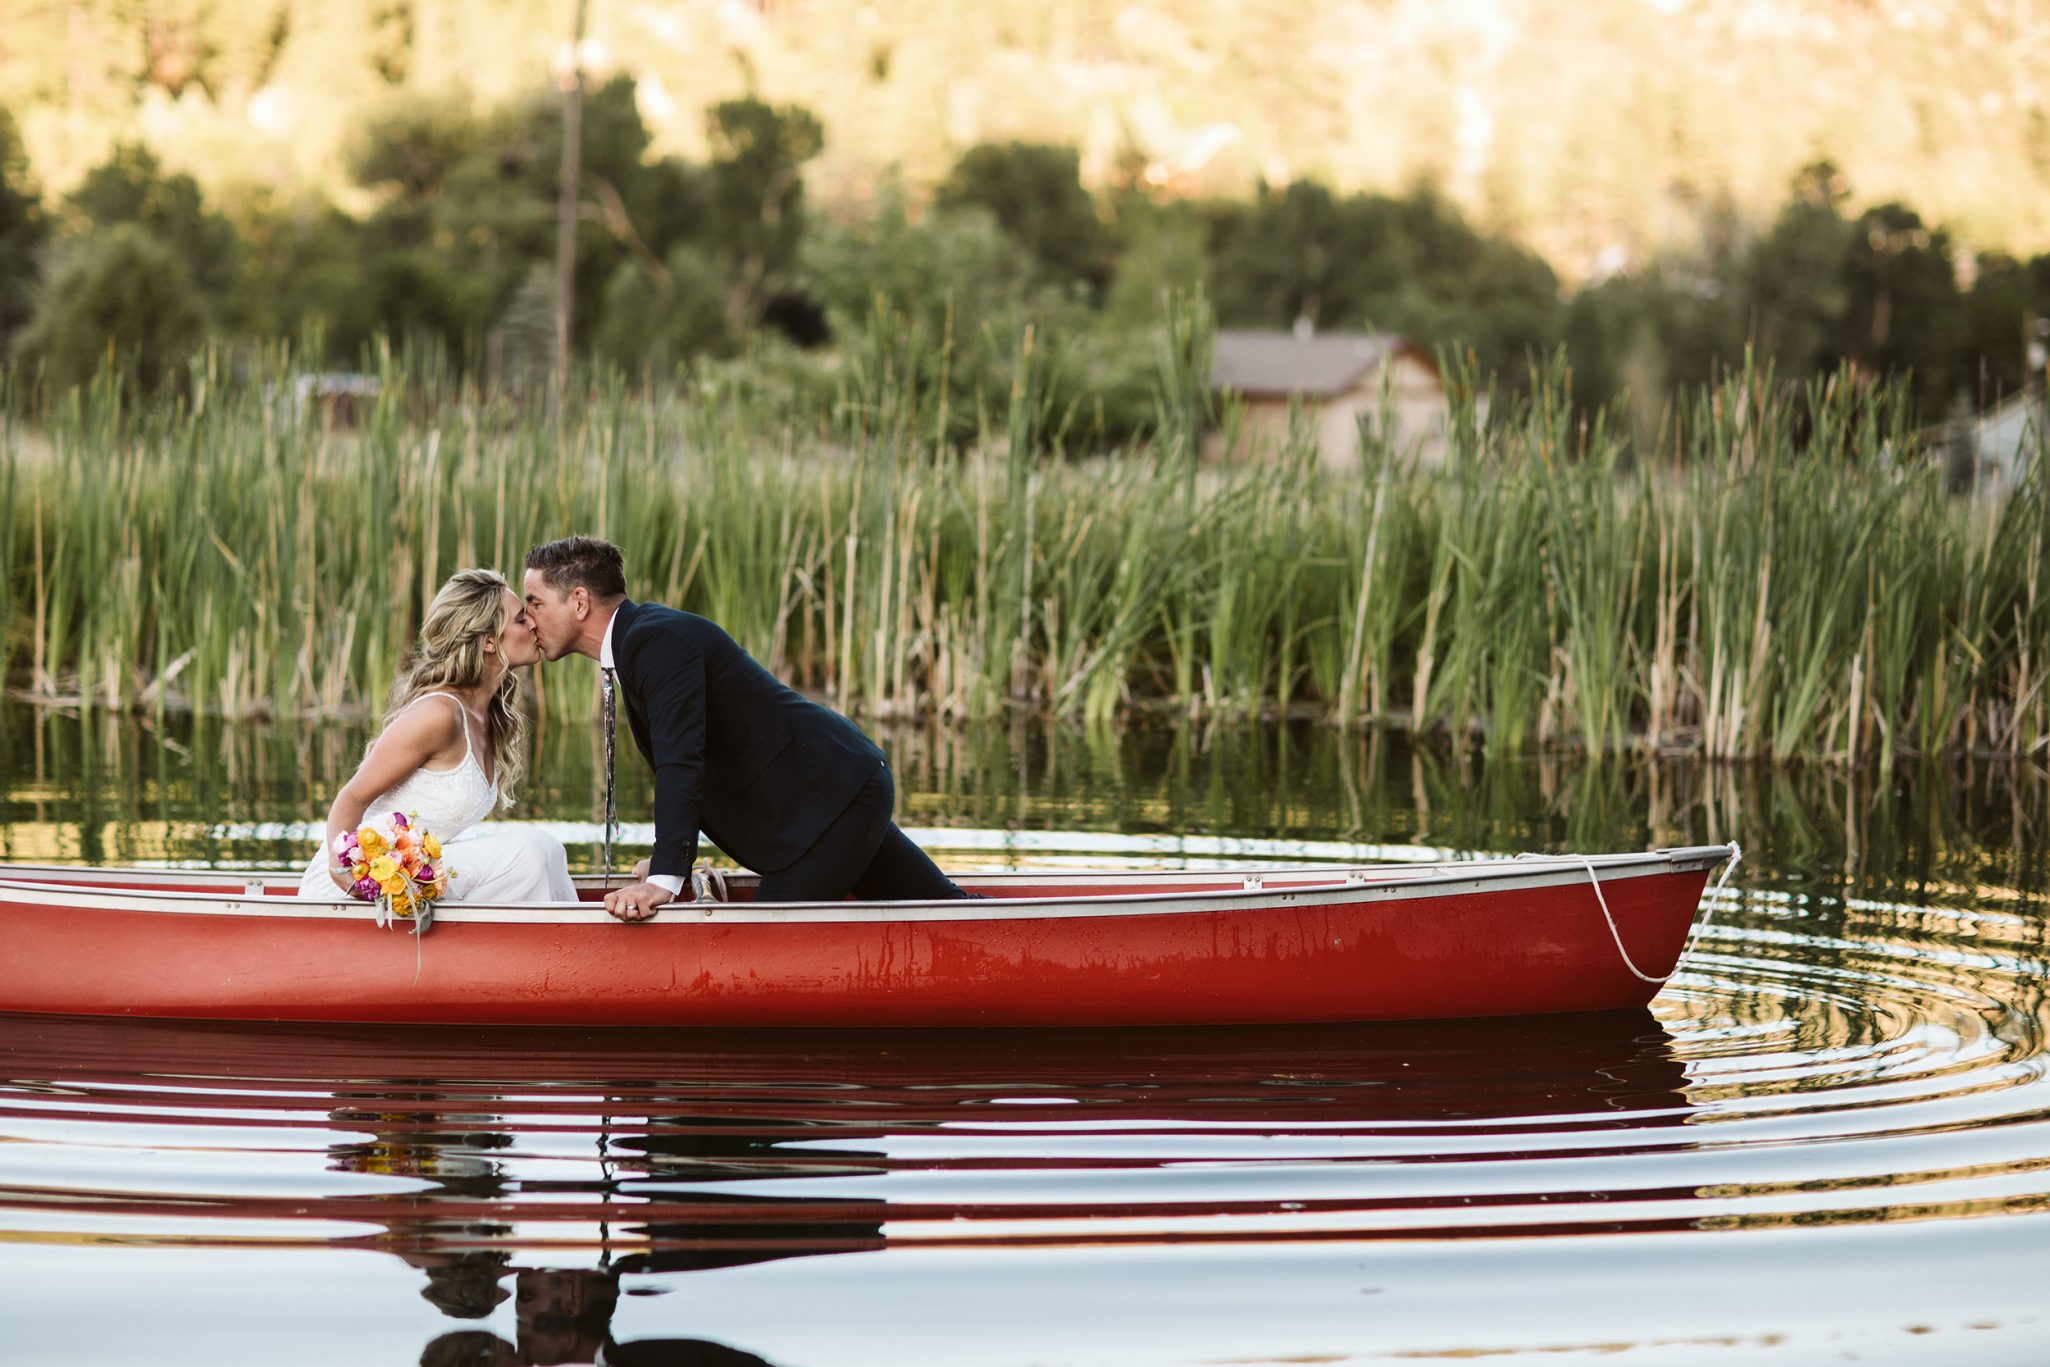 Bride & Groom in a red canoe, Durango Colorado